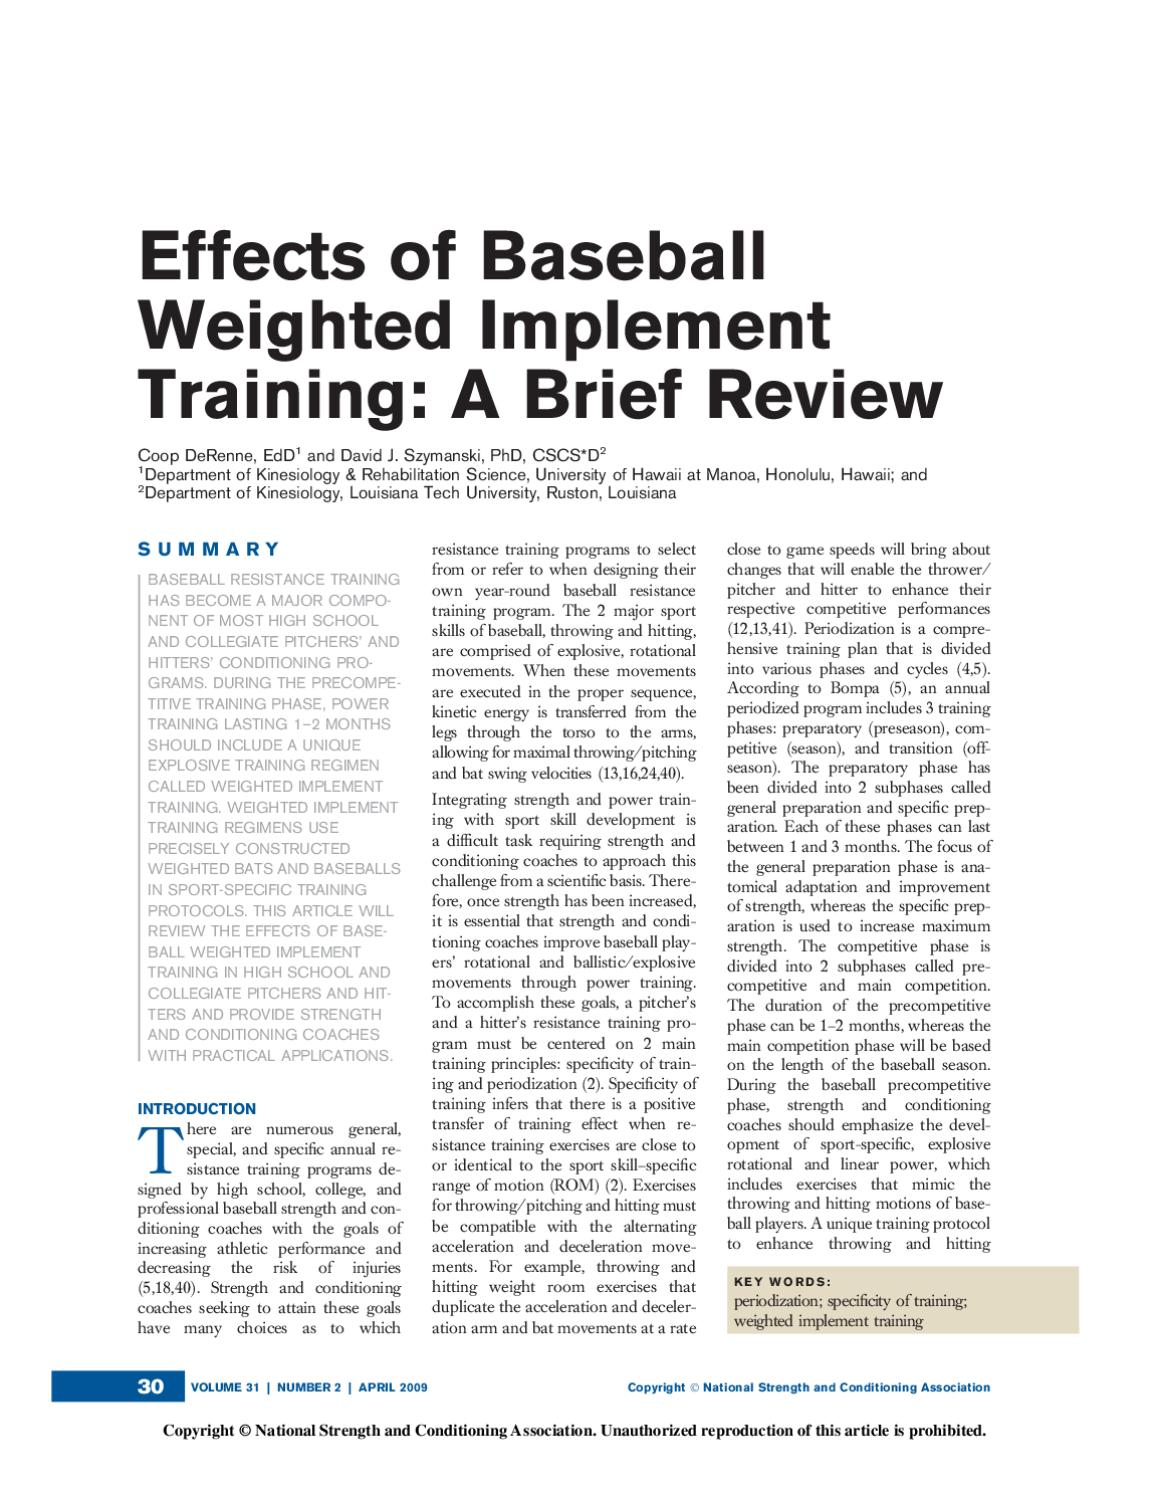 Effects of baseball Weighted Implement Training by MLB